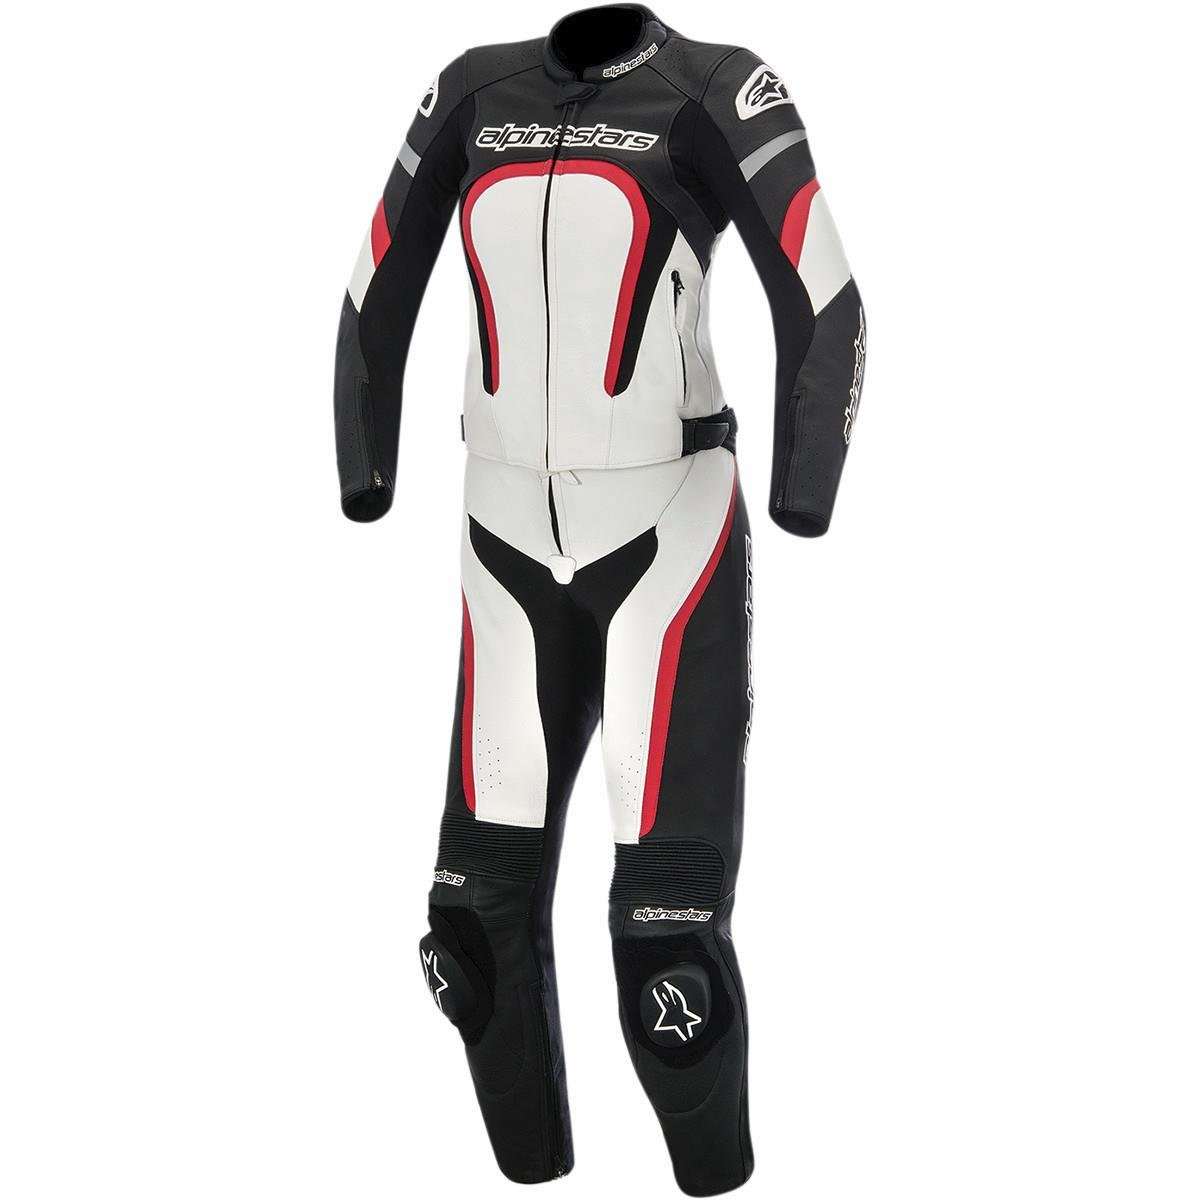 Alpinestars Motegi Women's 2-Piece Street Motorcycle Race Suits - Black/White/Red / 42